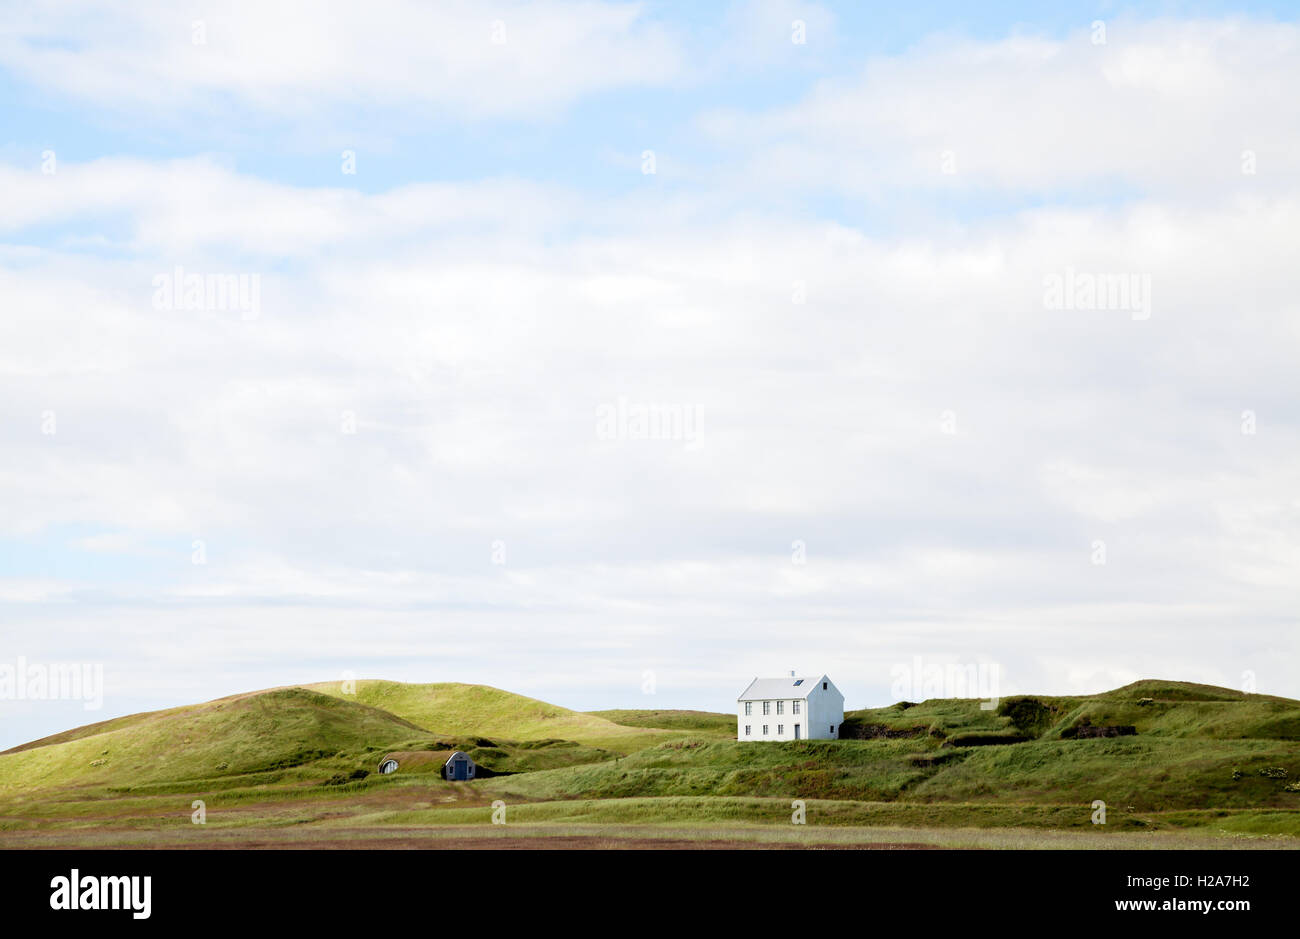 Beautiful white house against cloudy sky, Iceland. Stock Photo